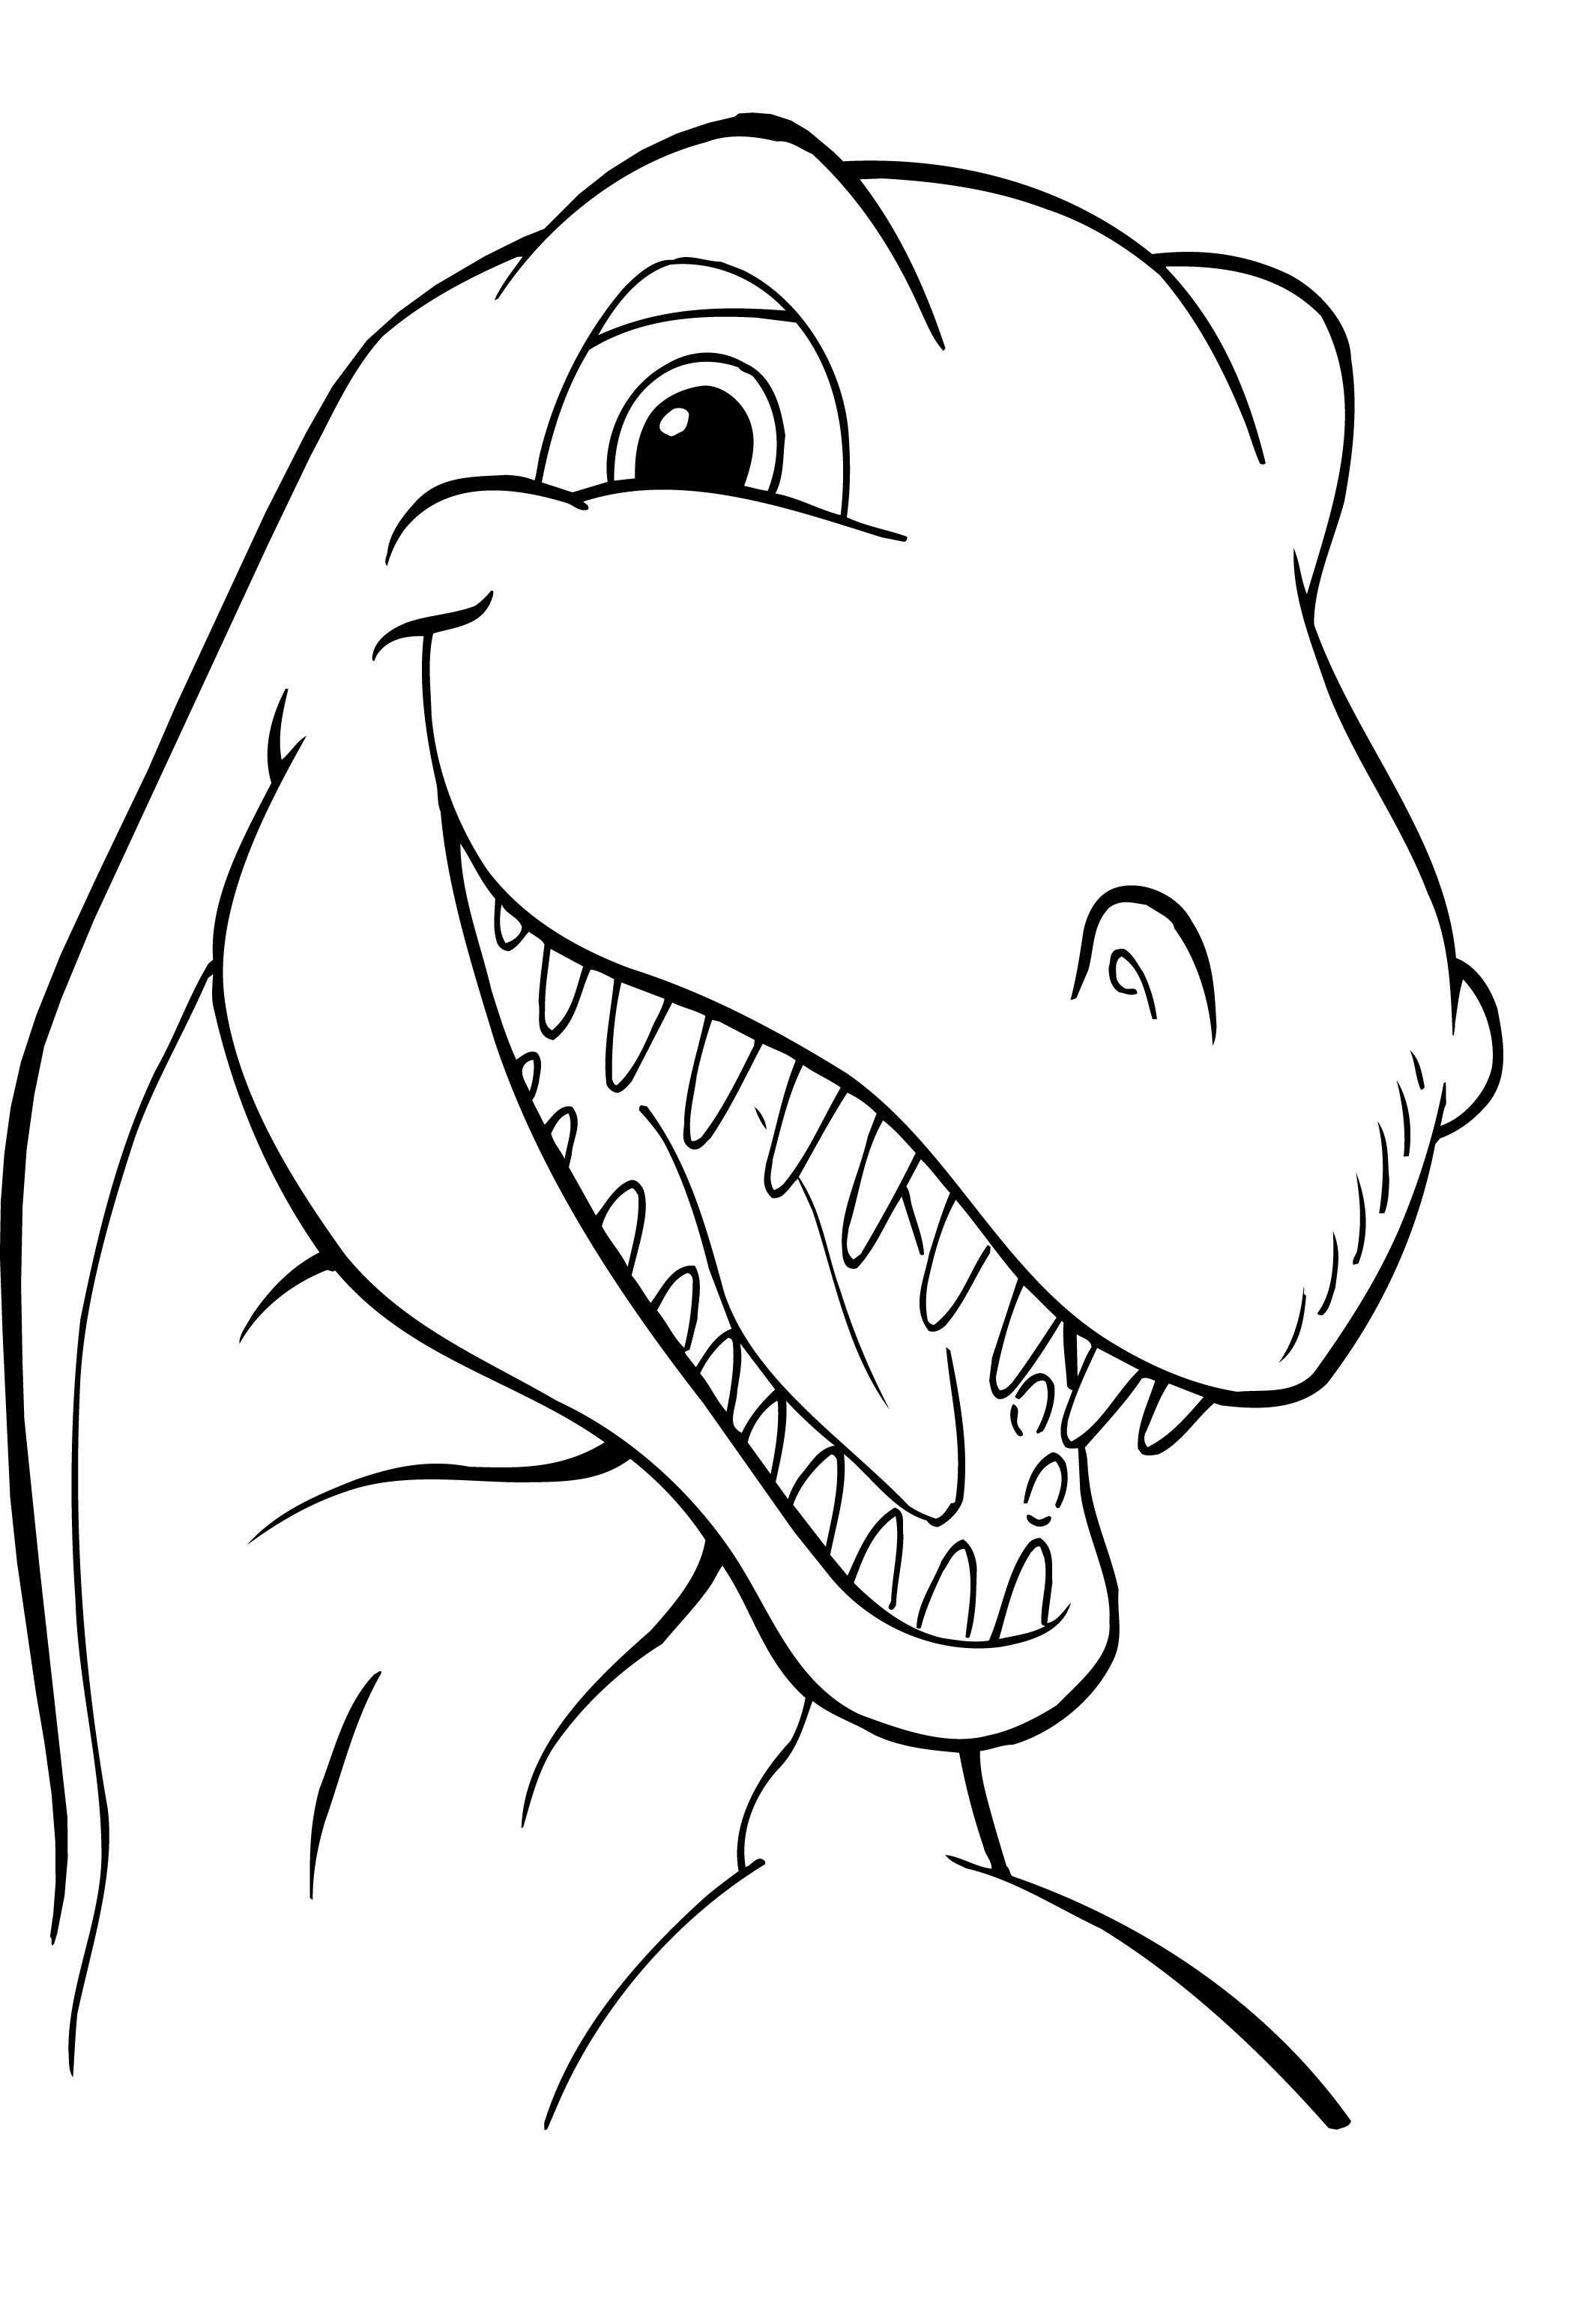 Free Printable Dinosaur Coloring Pages For Kids Dinosaurussen